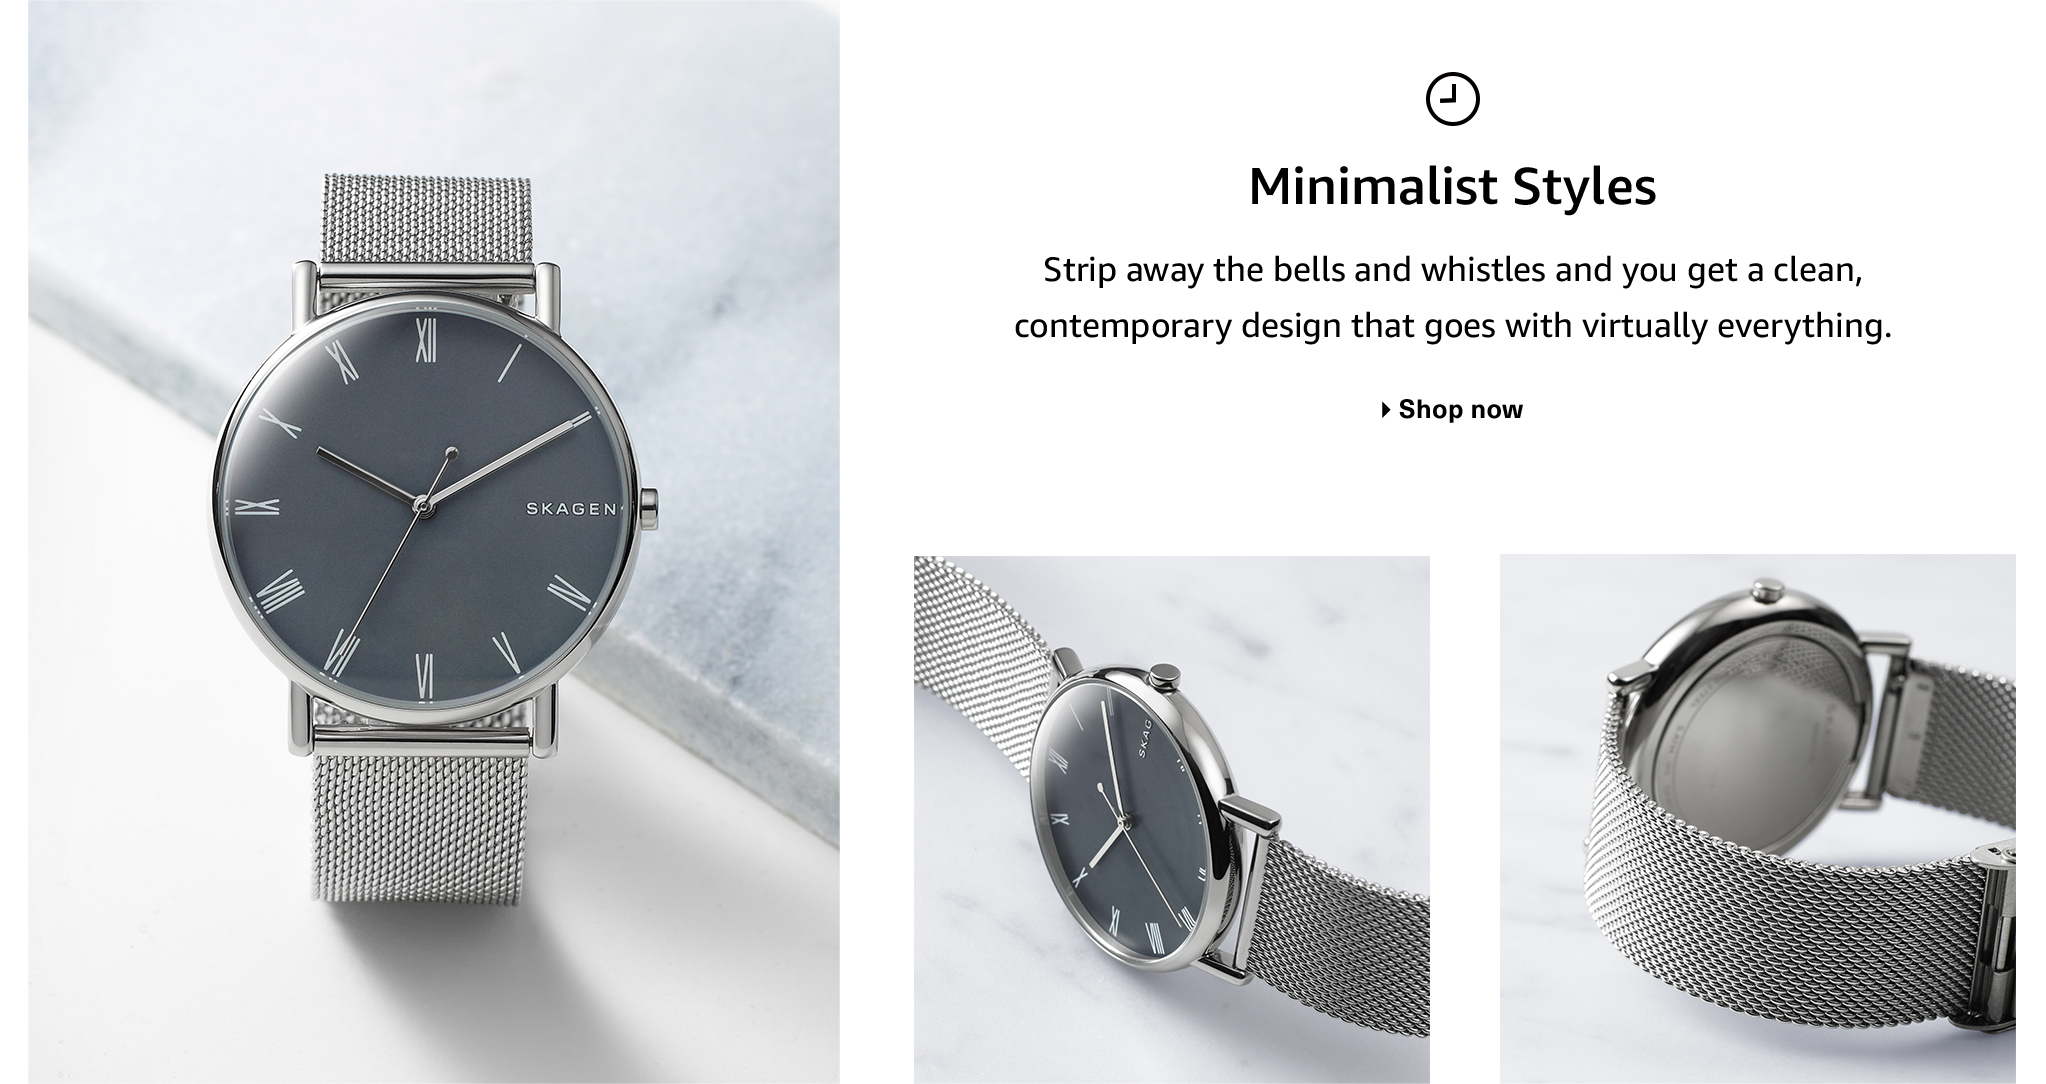 Men's Watches: Minimalist Styles